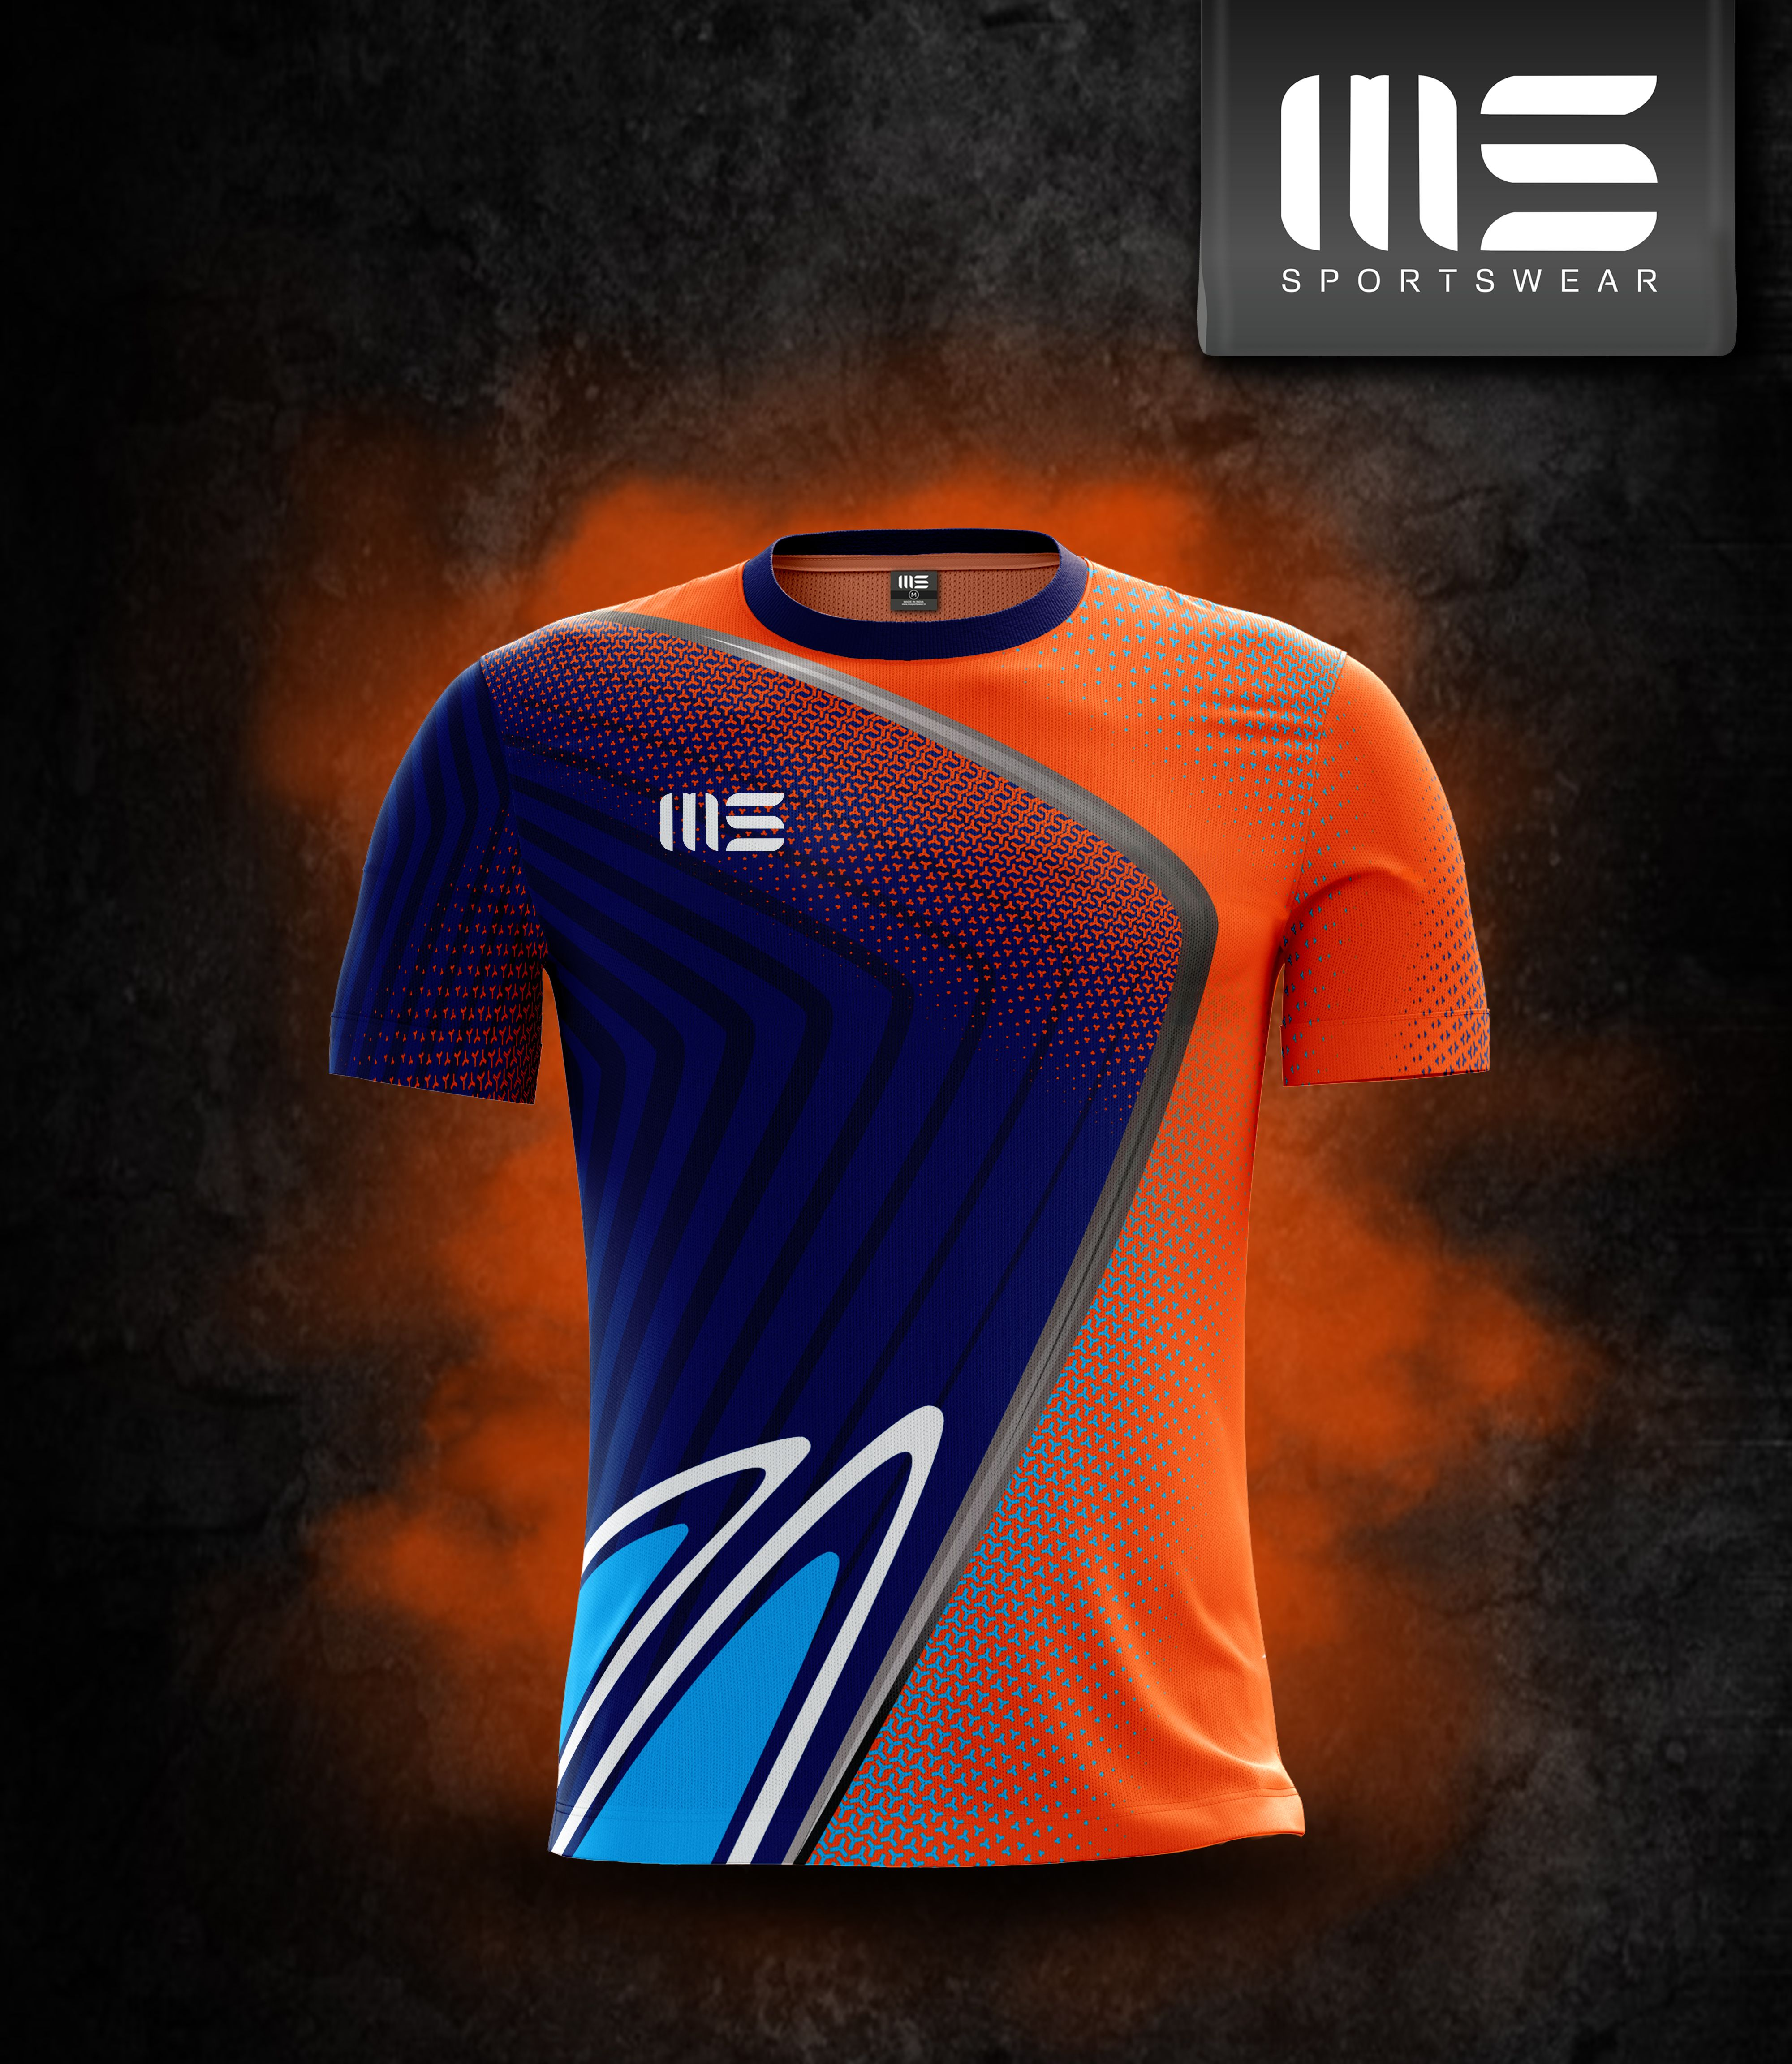 Cricket Jerseys In 2020 Sport Shirt Design Sports Tshirt Designs Sports Jersey Design